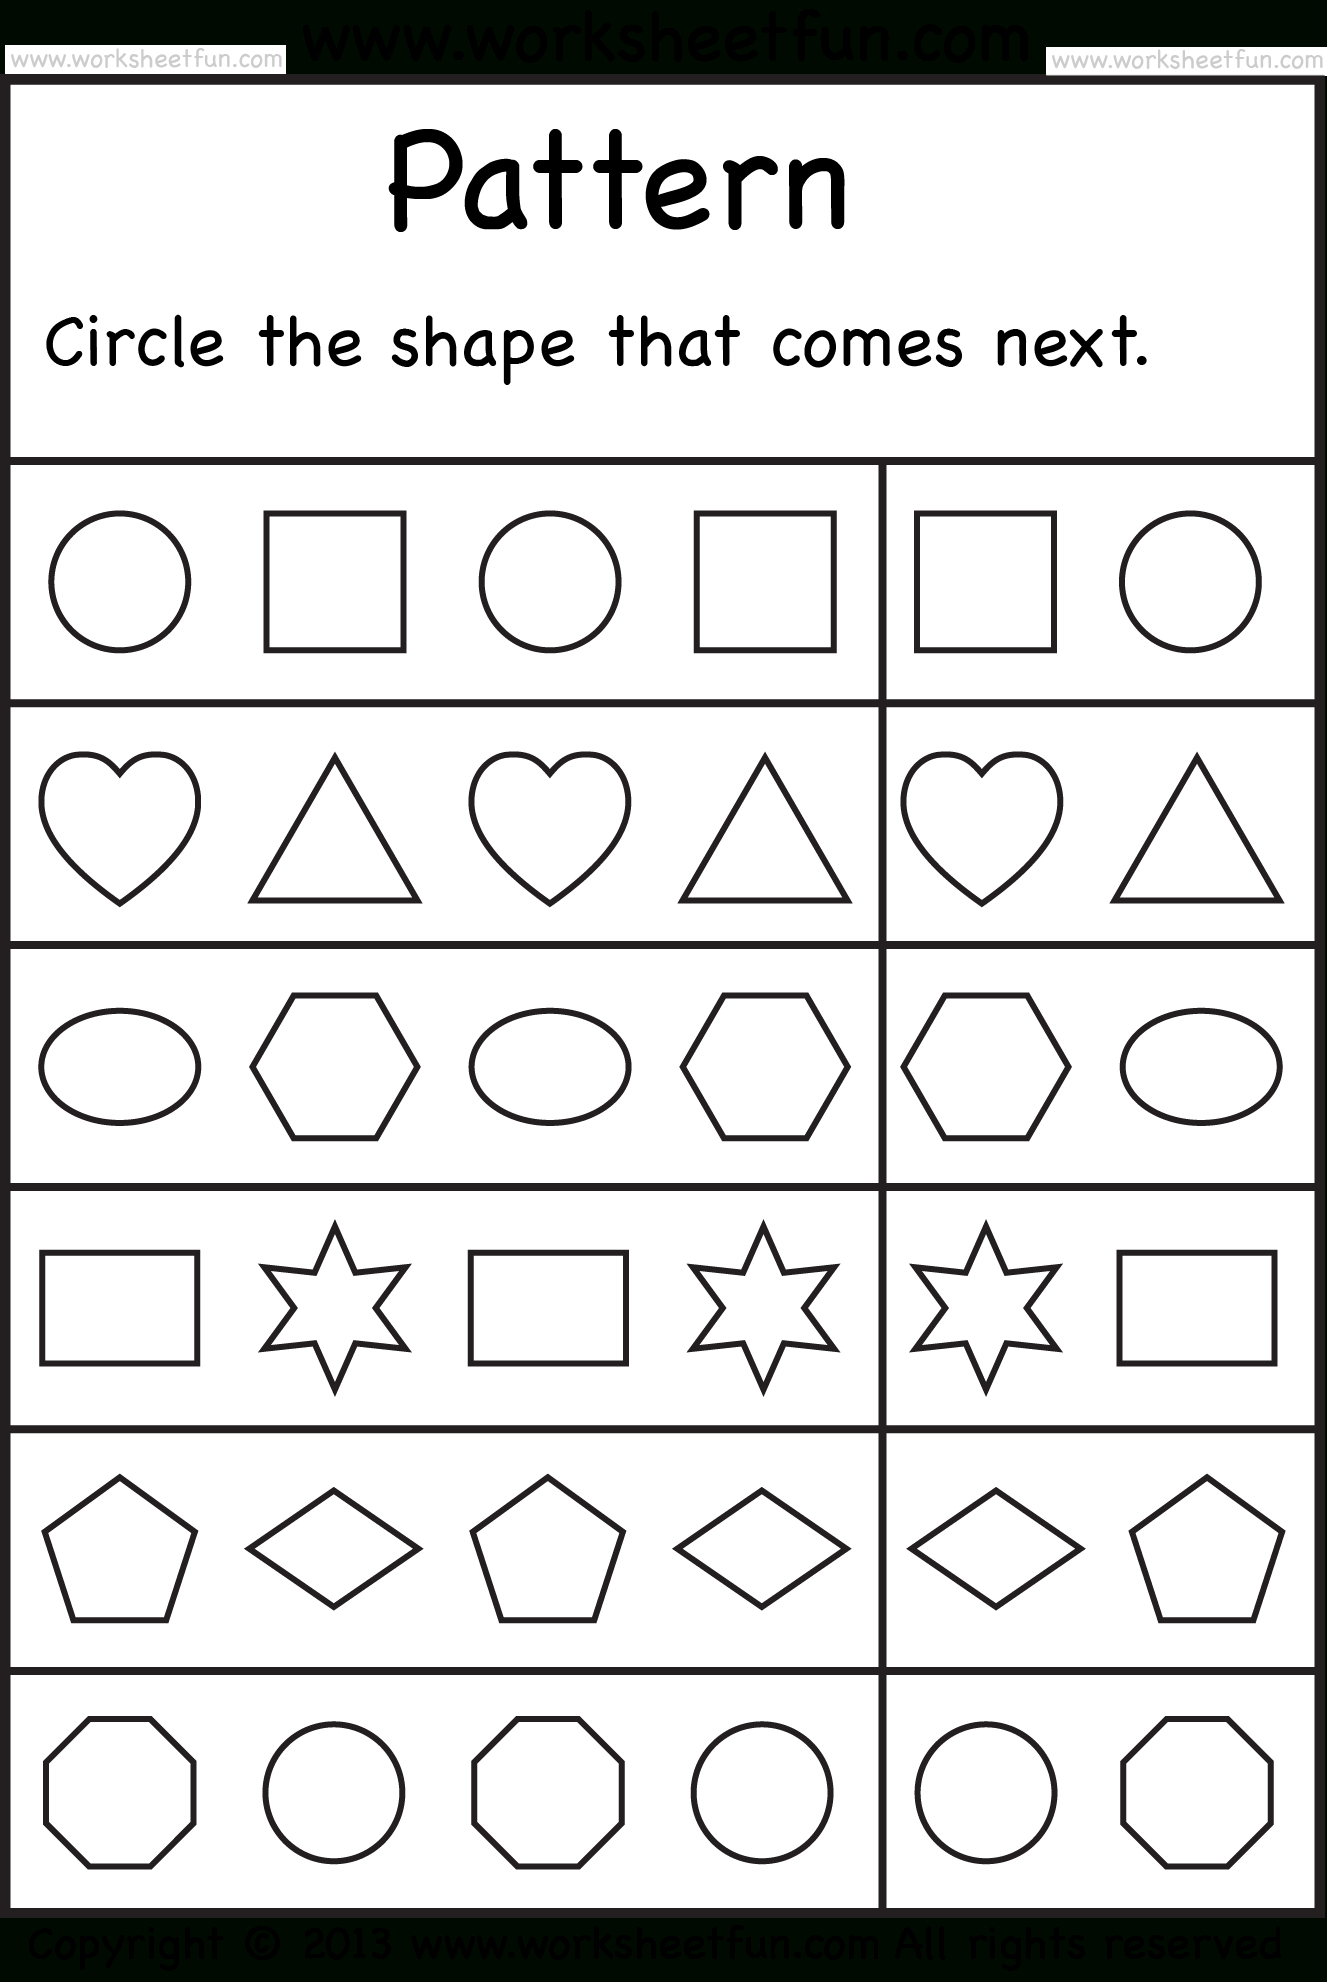 Free Printable Worksheets – Worksheetfun / Free Printable  | Math | Free Printable Worksheets For Kids